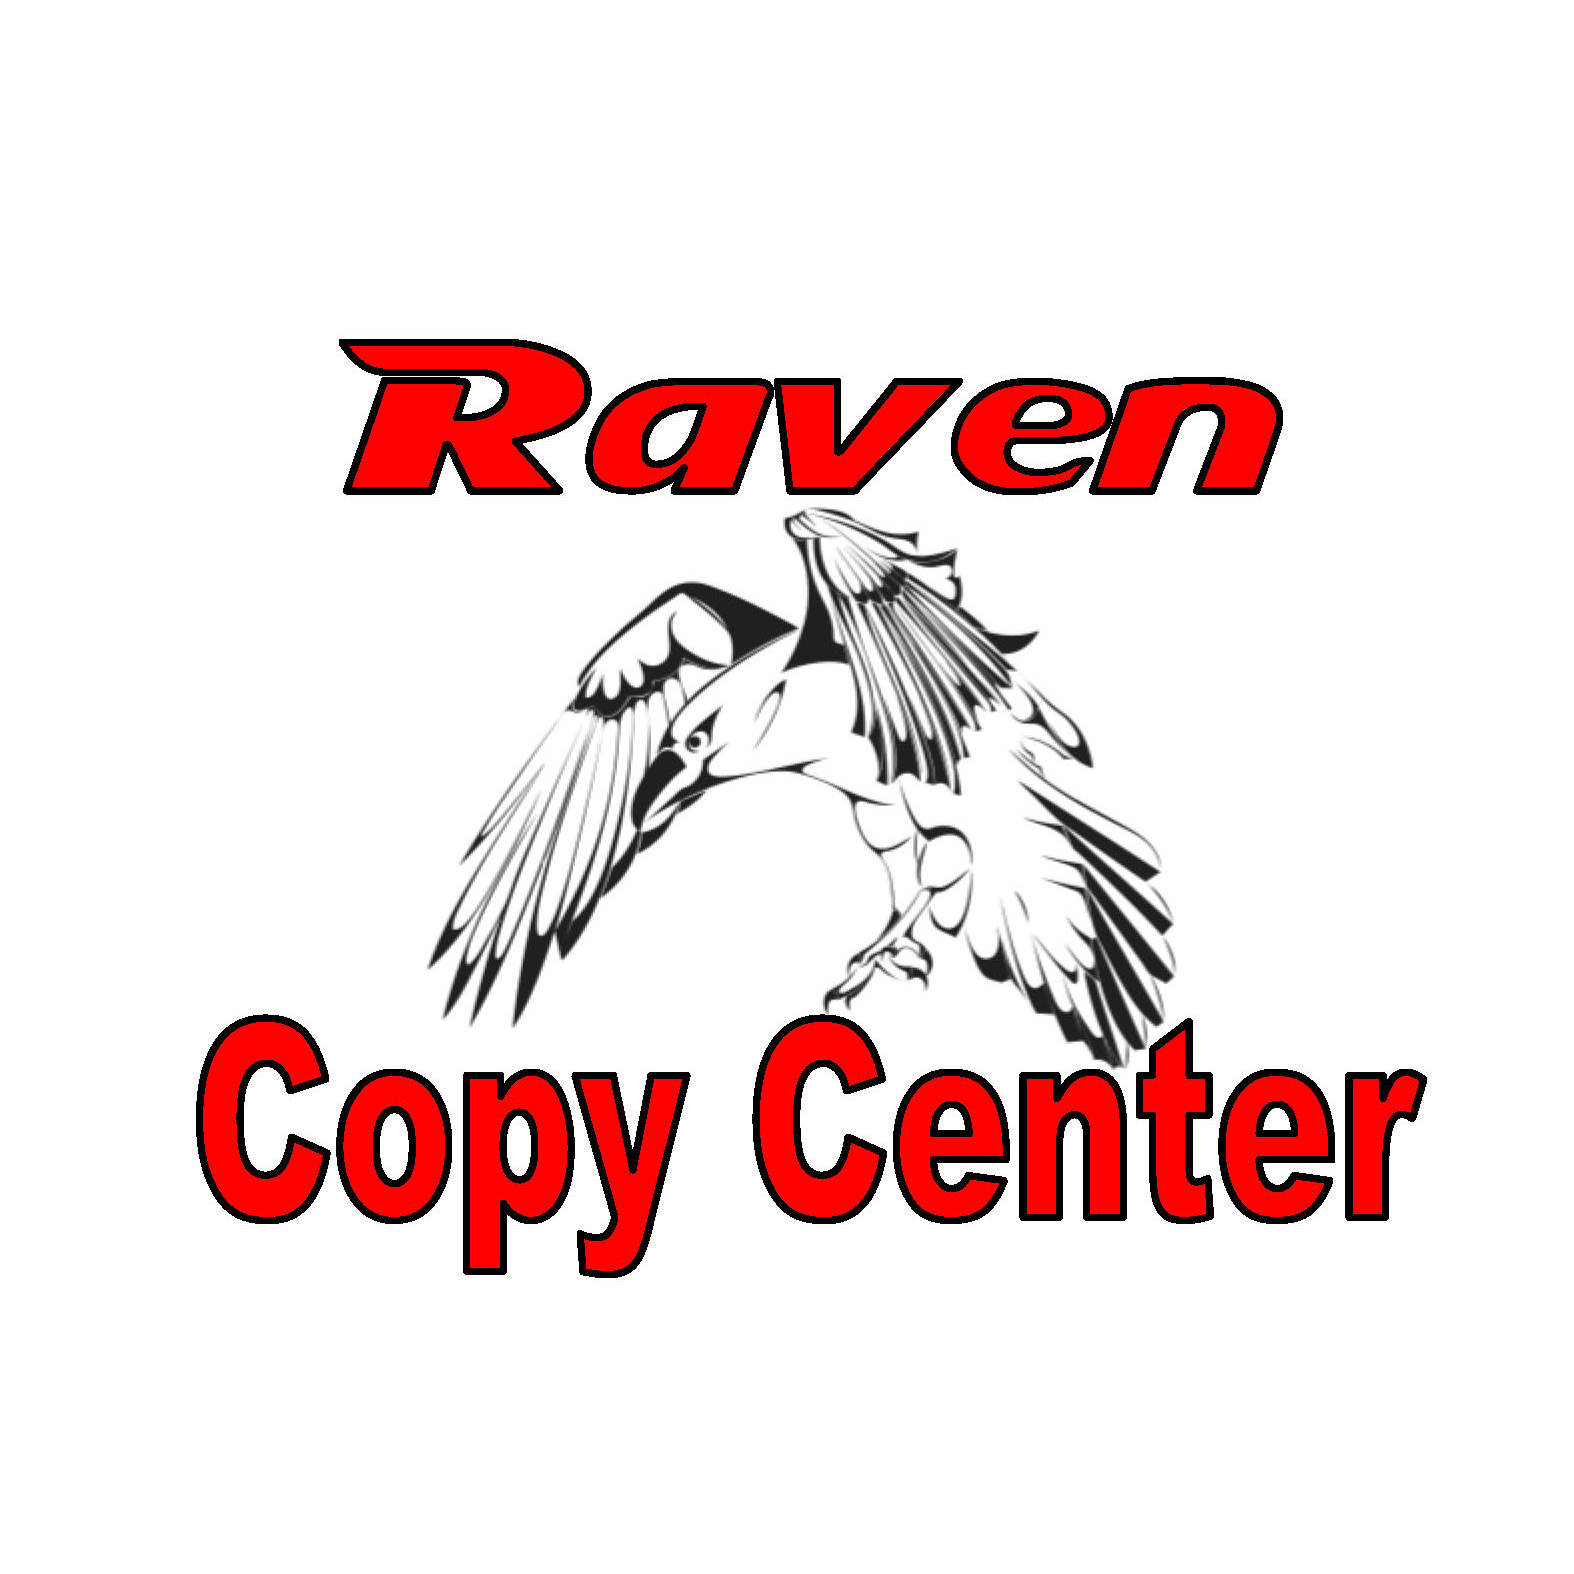 Raven Copy Center LLC